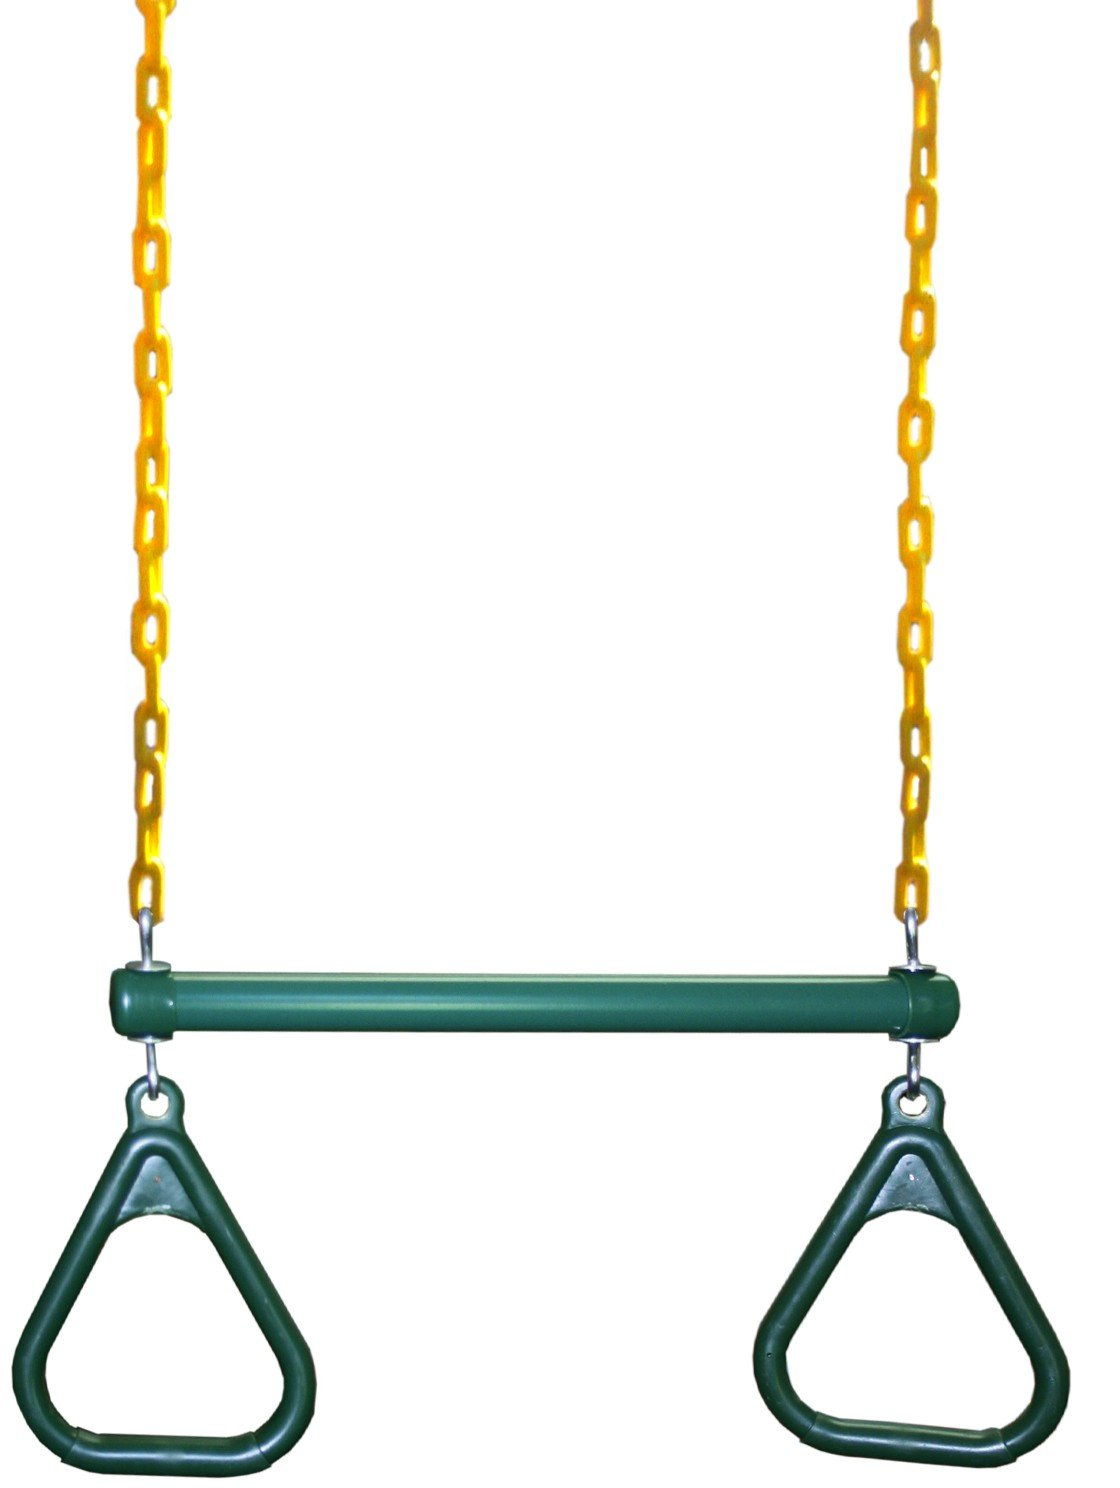 Eastern Jungle Gym Heavy-Duty Ring Trapeze Bar Combo Swing ,Large 20'' Trapeze Bar with Coated Swing Chains 43'' Long by Eastern Jungle Gym (Image #1)